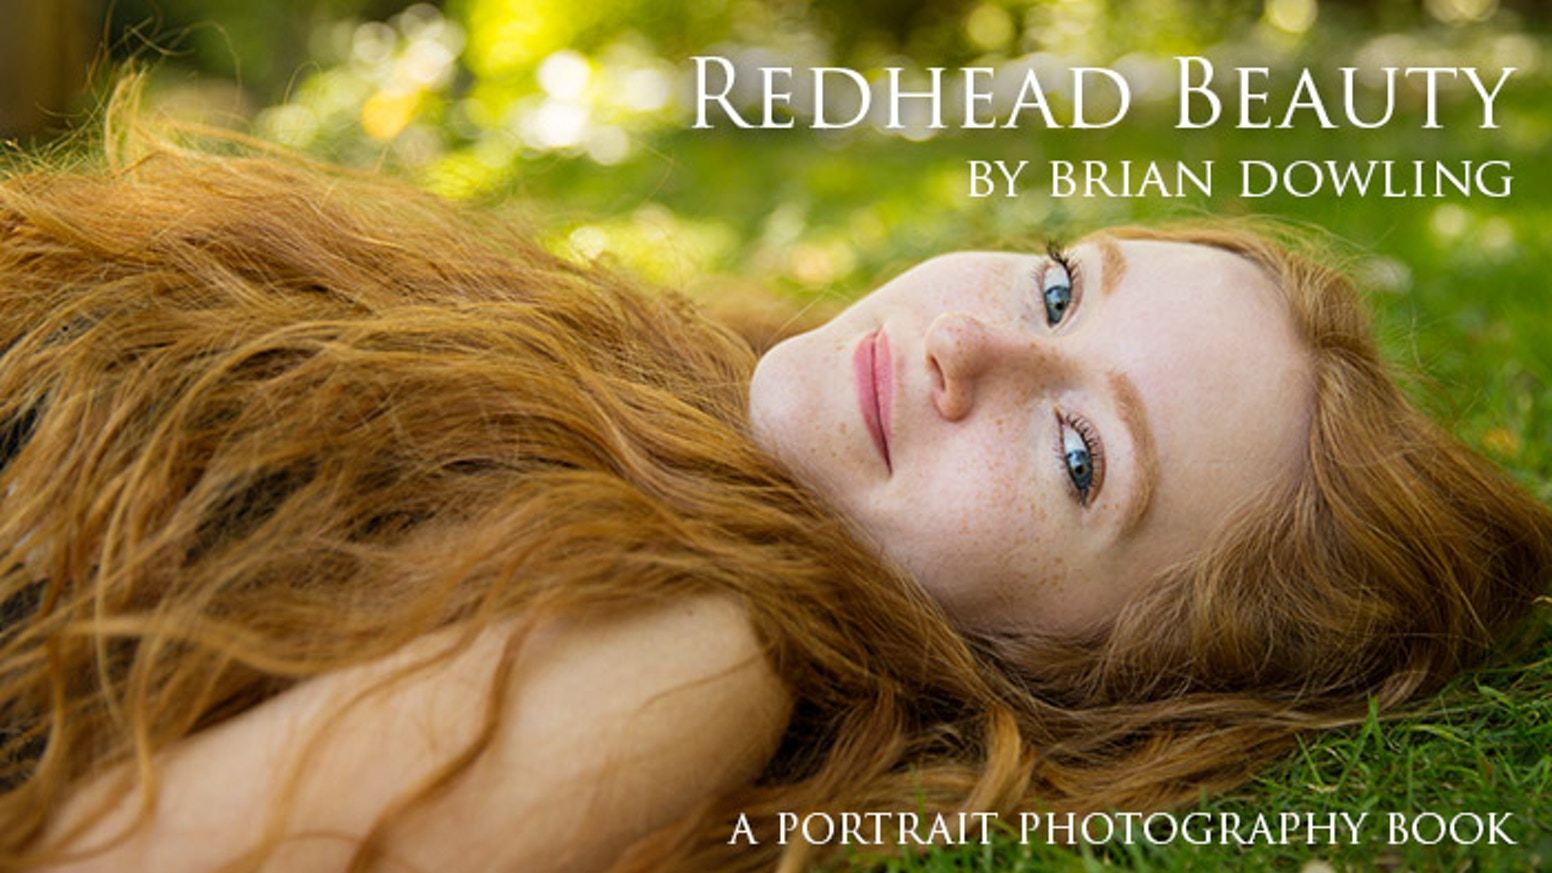 A Large Format Art Book Containing Portraits Of Beautiful Redheads From 20 Countries Photographed By Brian